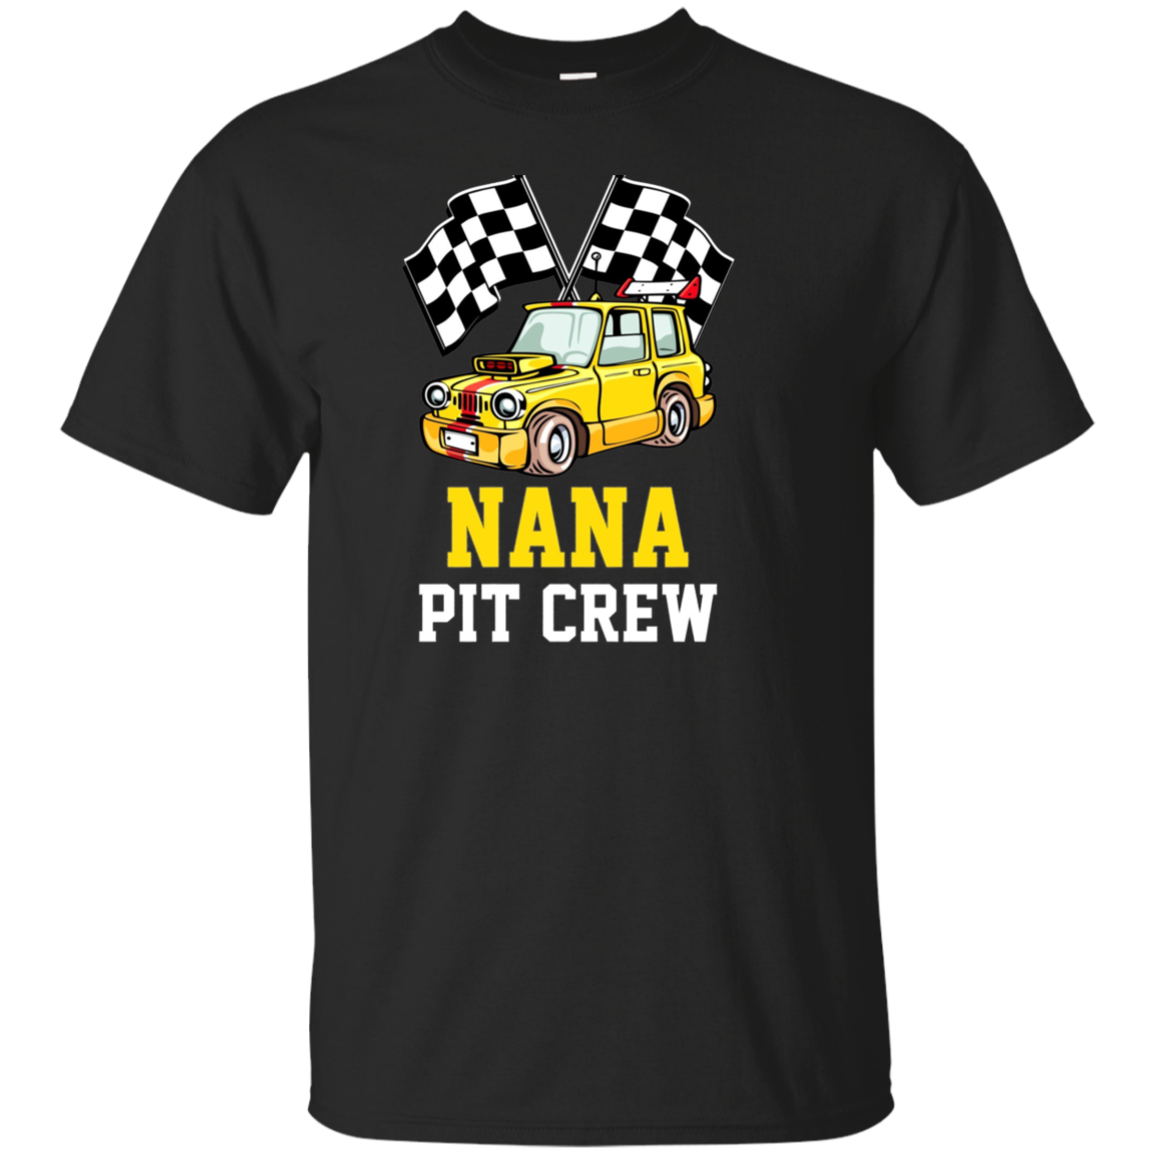 Pit Crew NANA Back Print Long Sleeve T-Shirt Race Car